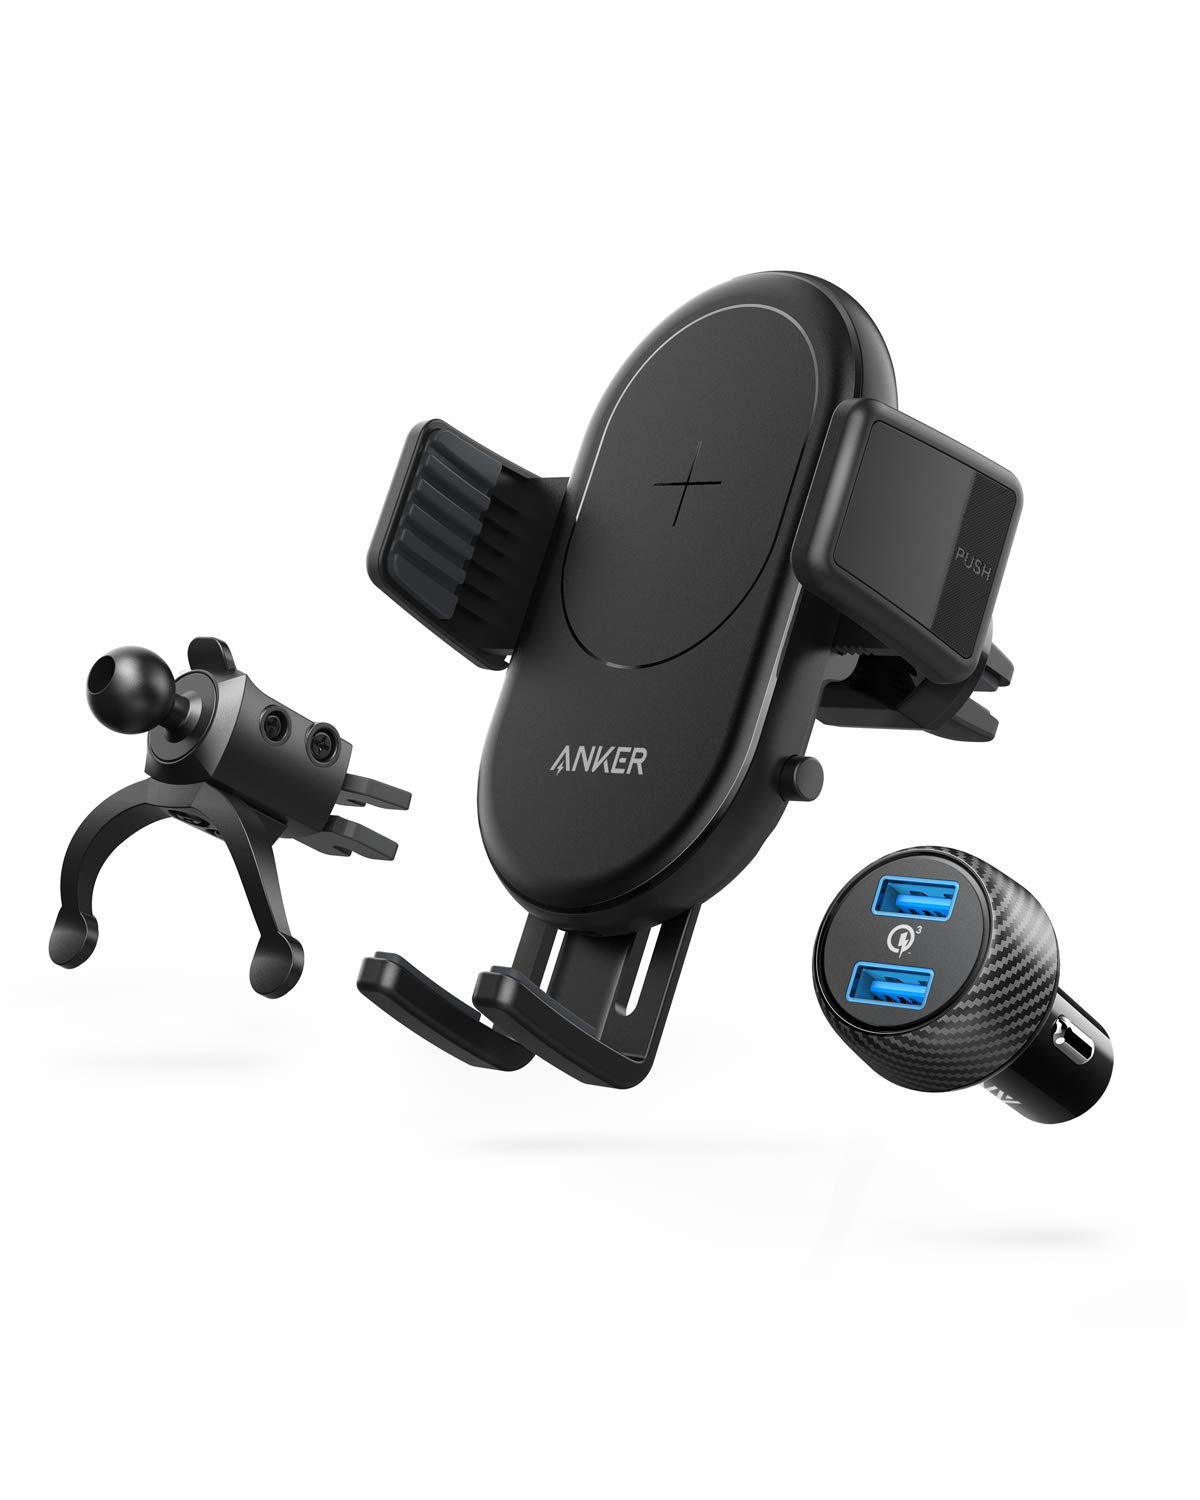 Anker PowerWave Fast Wireless Car Charger with Air Vent Phone Holder, Qi-Certified, 7.5W Fast Charging iPhone Xs Max/XR/XS/X/8/8 Plus, 10W for Galaxy S9/S9+/S8/S8+ (Quick Charge Car Charger Included) by Anker (Image #1)